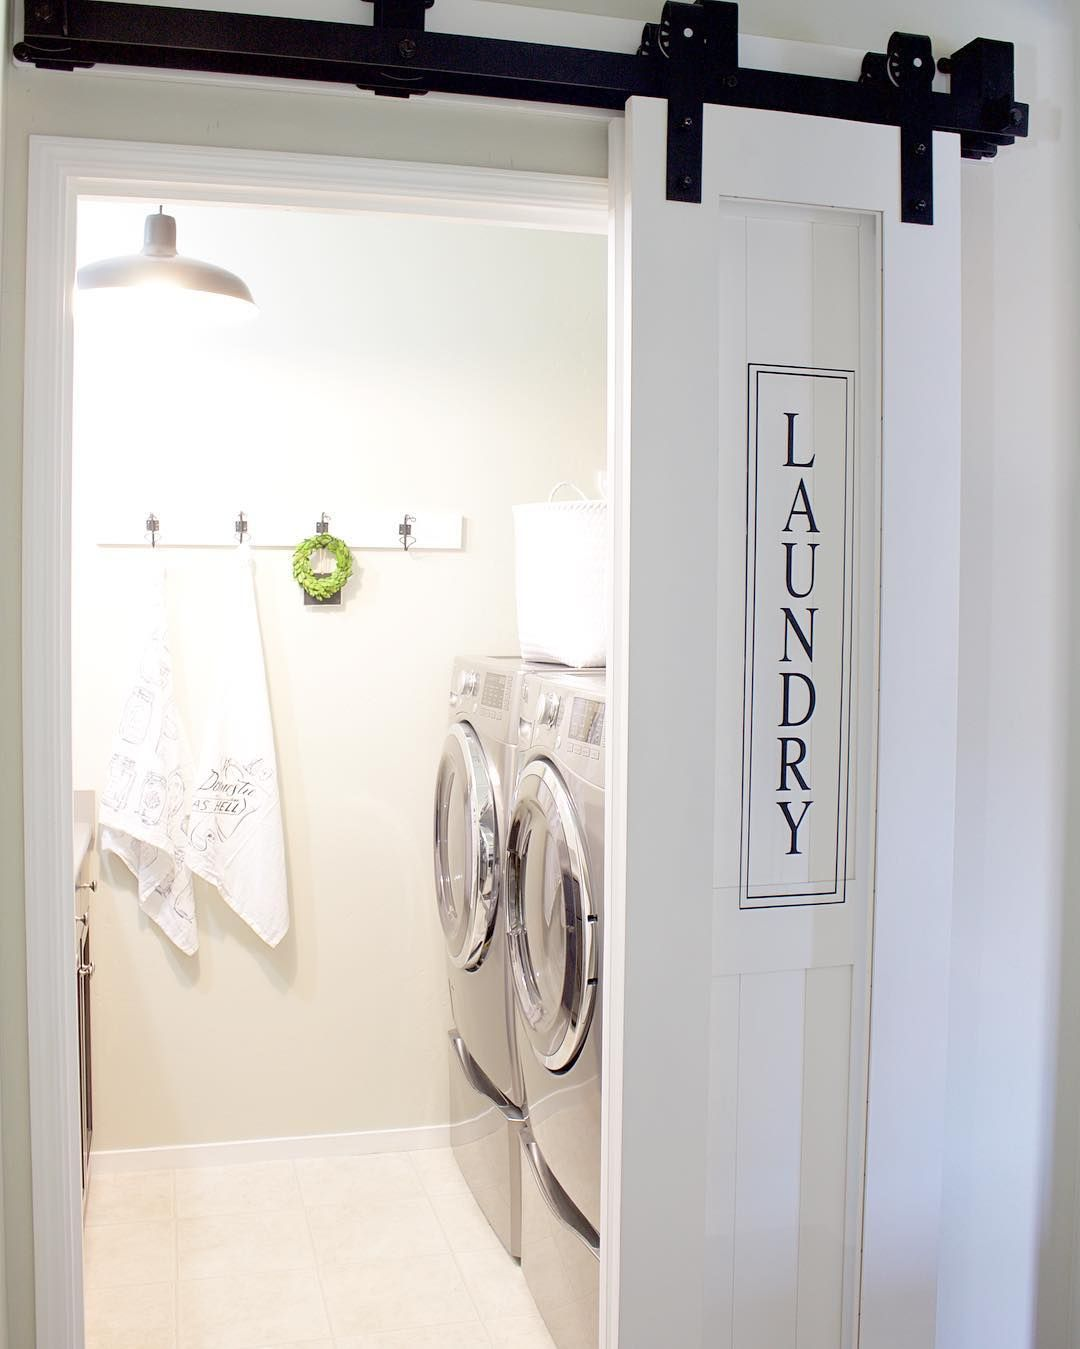 Acrylic Laundry Barn Doors Space Saver For Small Rooms